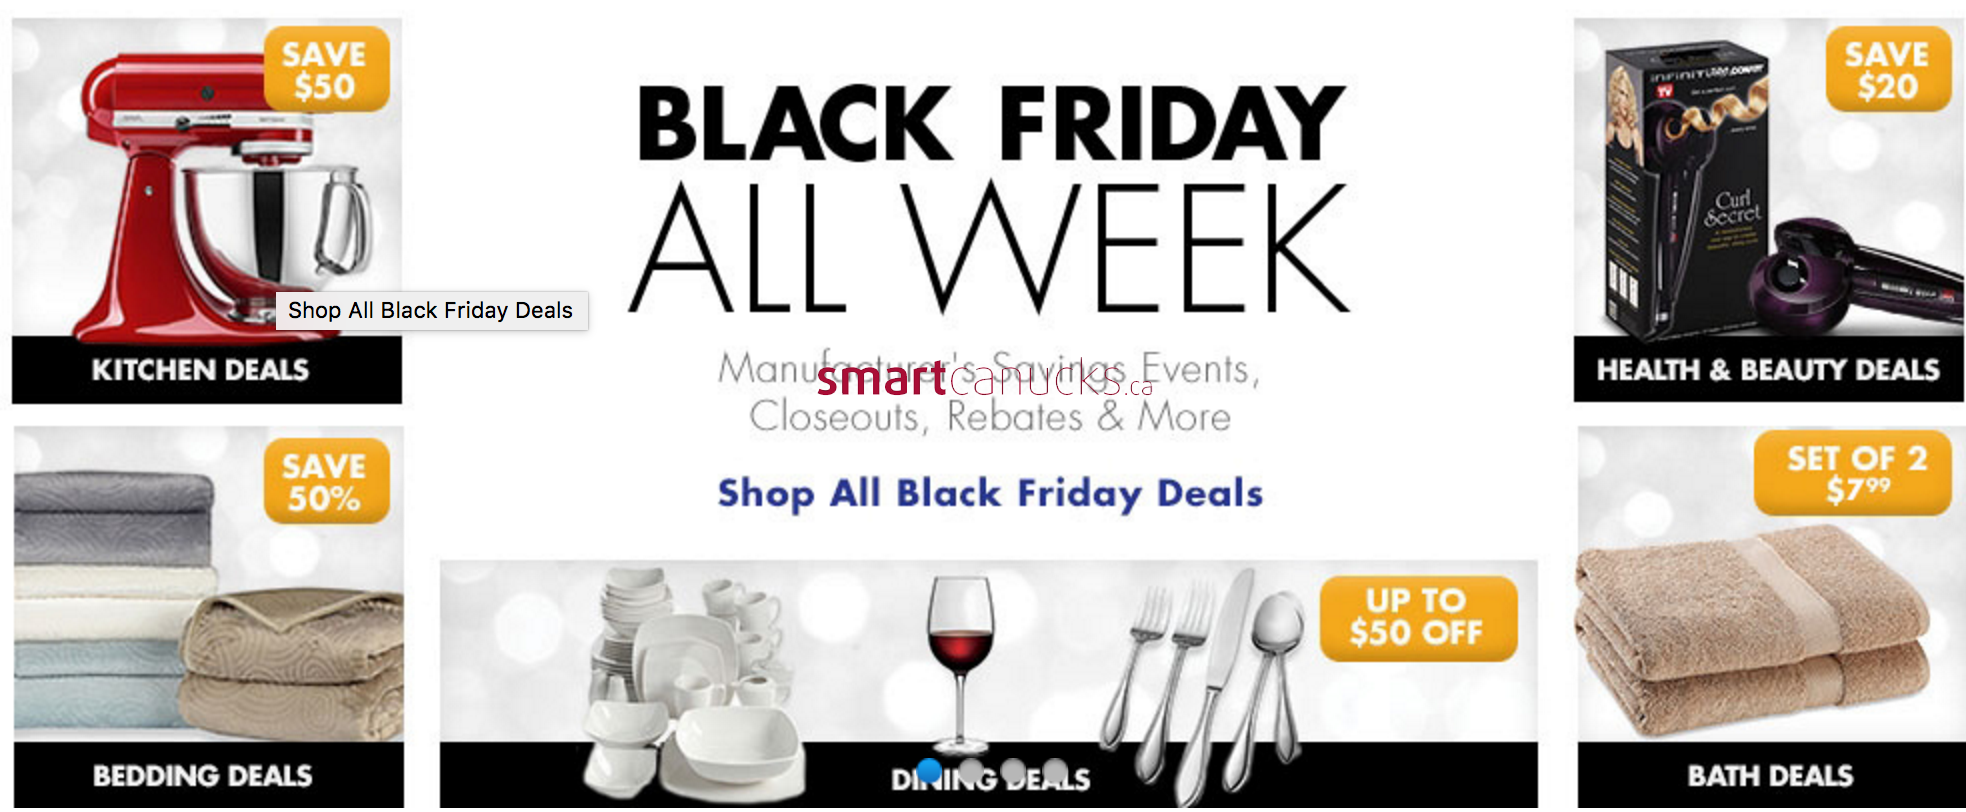 Bed Bath and Beyond Coupon: 20% Off Entire Purchase for during Bed Bath and Beyond Black Friday Sale. Get Black Friday Ad Alerts! user login. Alerts - Shopping List - Login My Account. Black Friday Bed Bath and Beyond Coupon: 20% Off Entire Purchase. Shop now. Save an extra 20% off Entire Purchase. Valid on Friday 11/